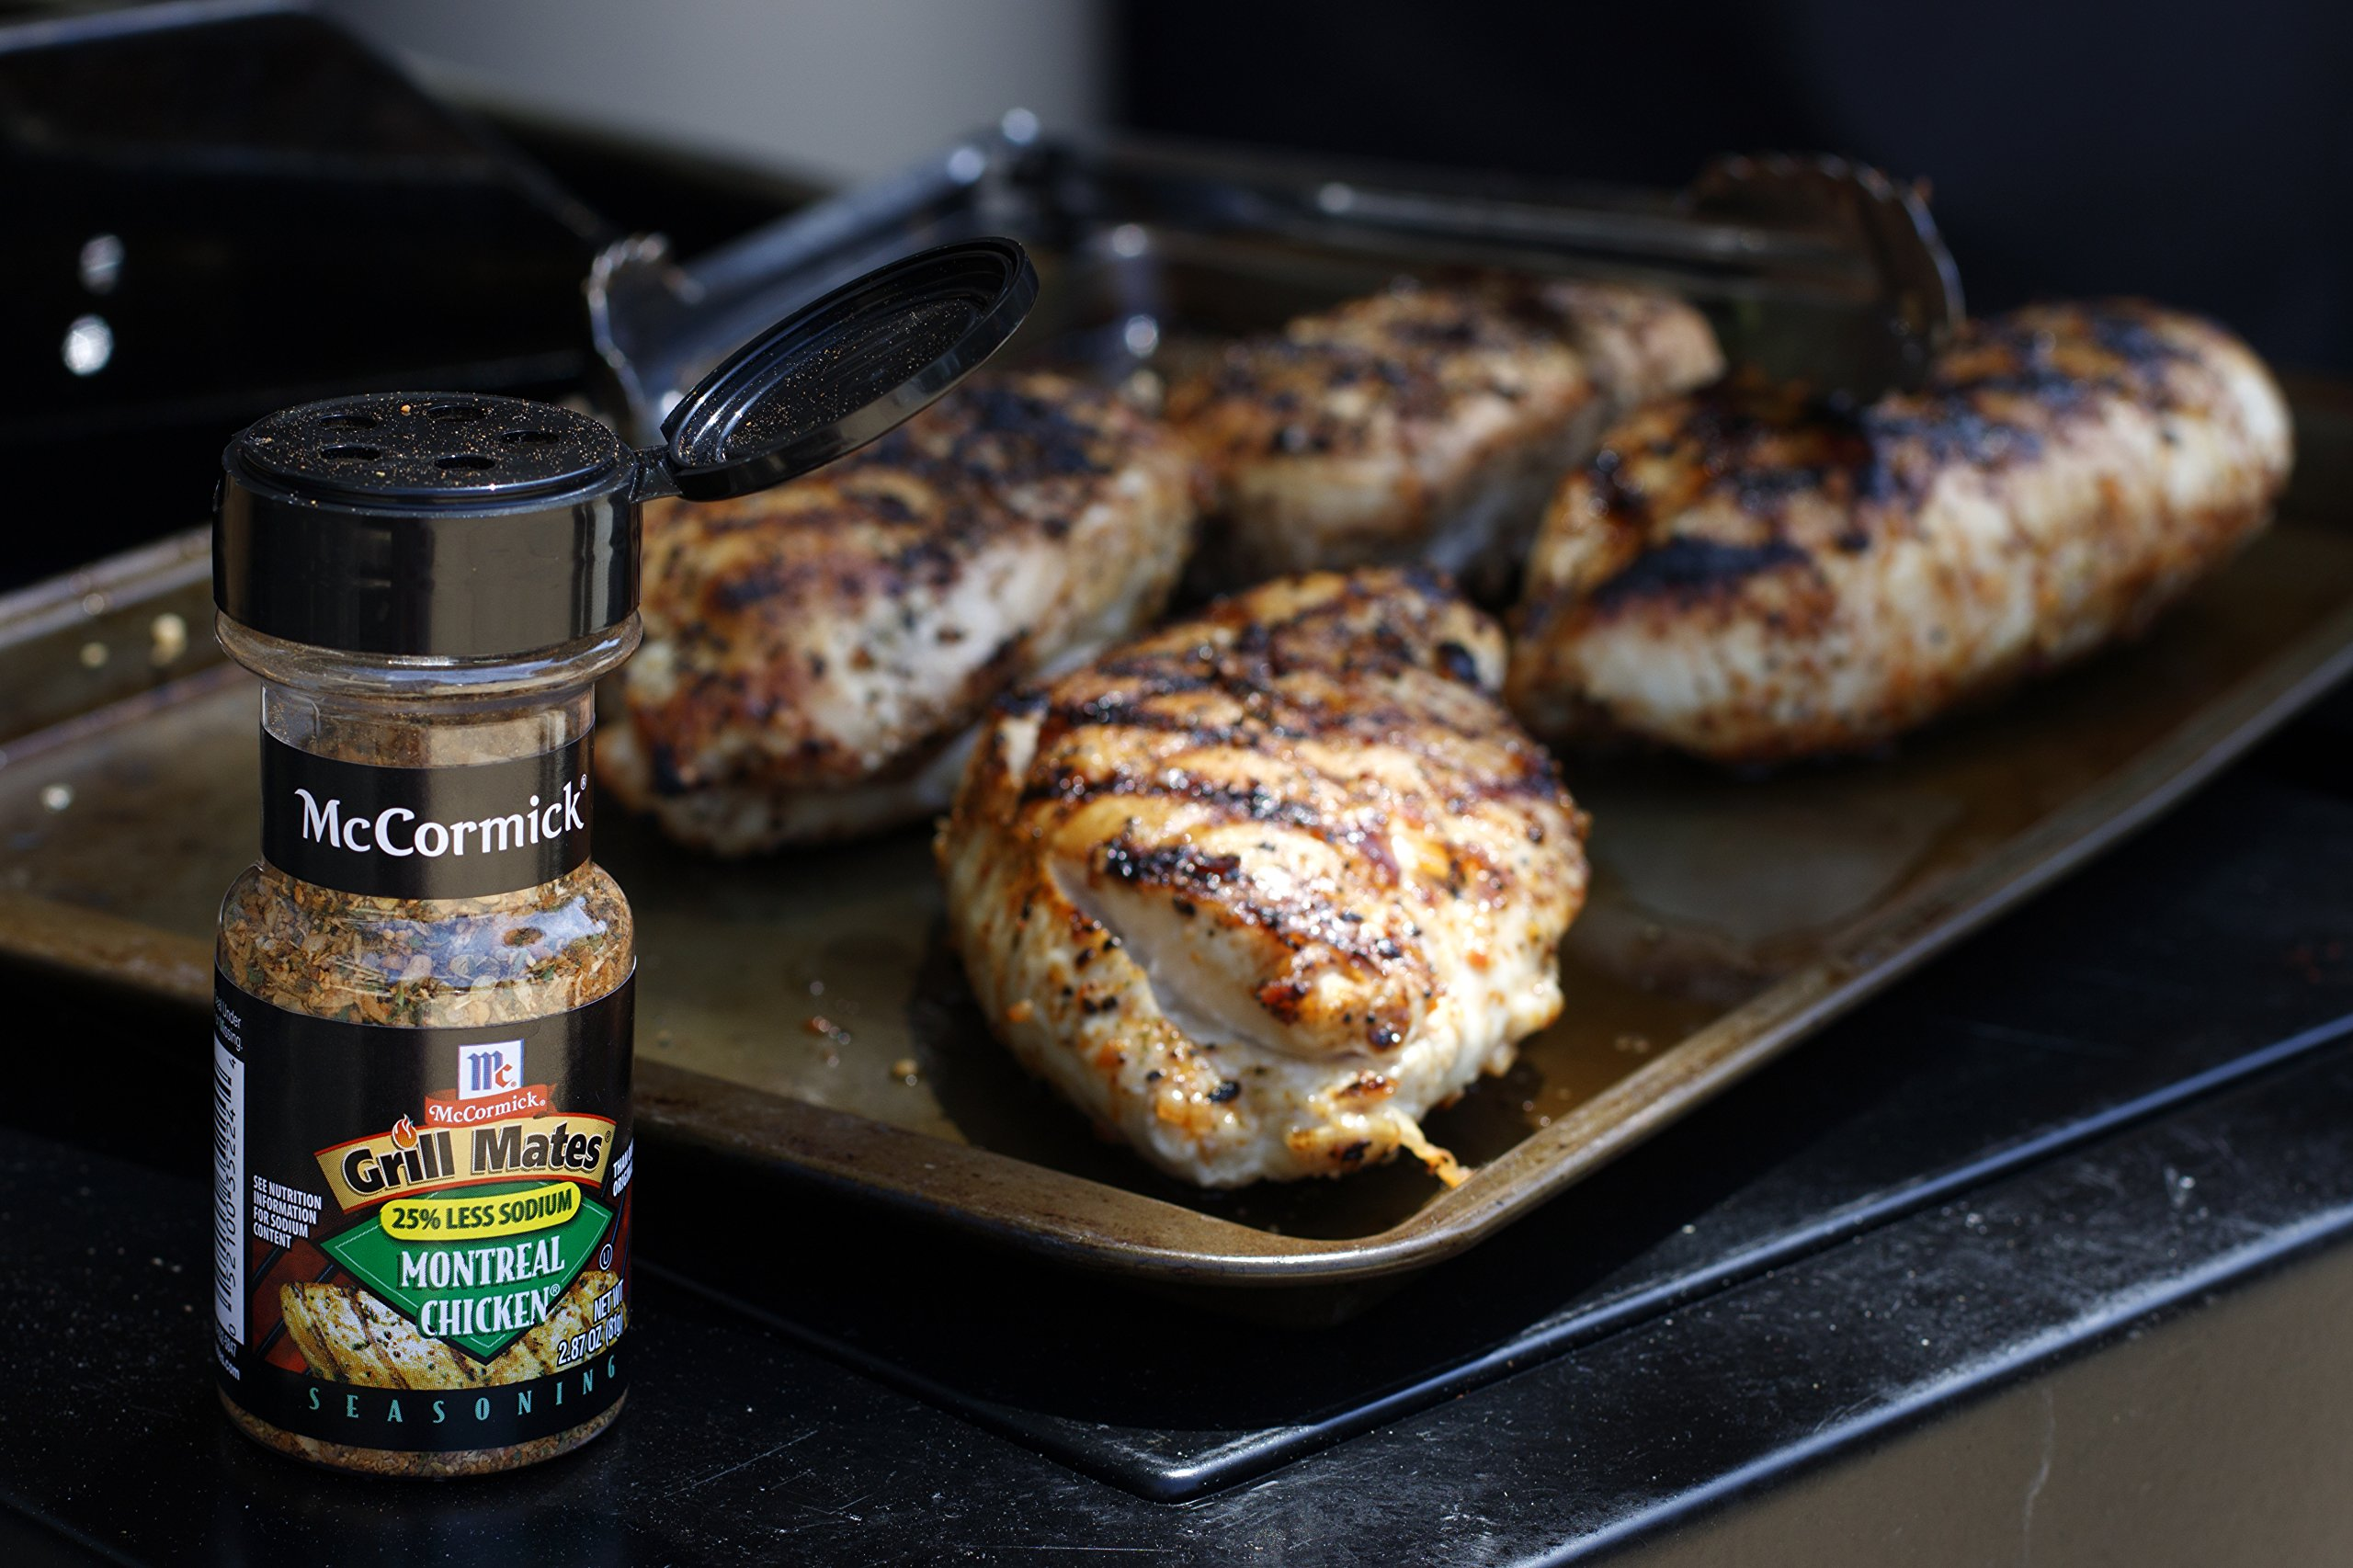 McCormick Grill Mates Brown Sugar Bourbon Seasoning, 13.5 oz 5 Distinctive sweet and spicy blend of brown sugar, bourbon, garlic, onion and salt PREP TIP: Just add 1 tbsp. of our Brown Sugar Bourbon Seasoning per 1 lb. of meat for a juicy, mouthwatering meal No MSG or artificial flavors added